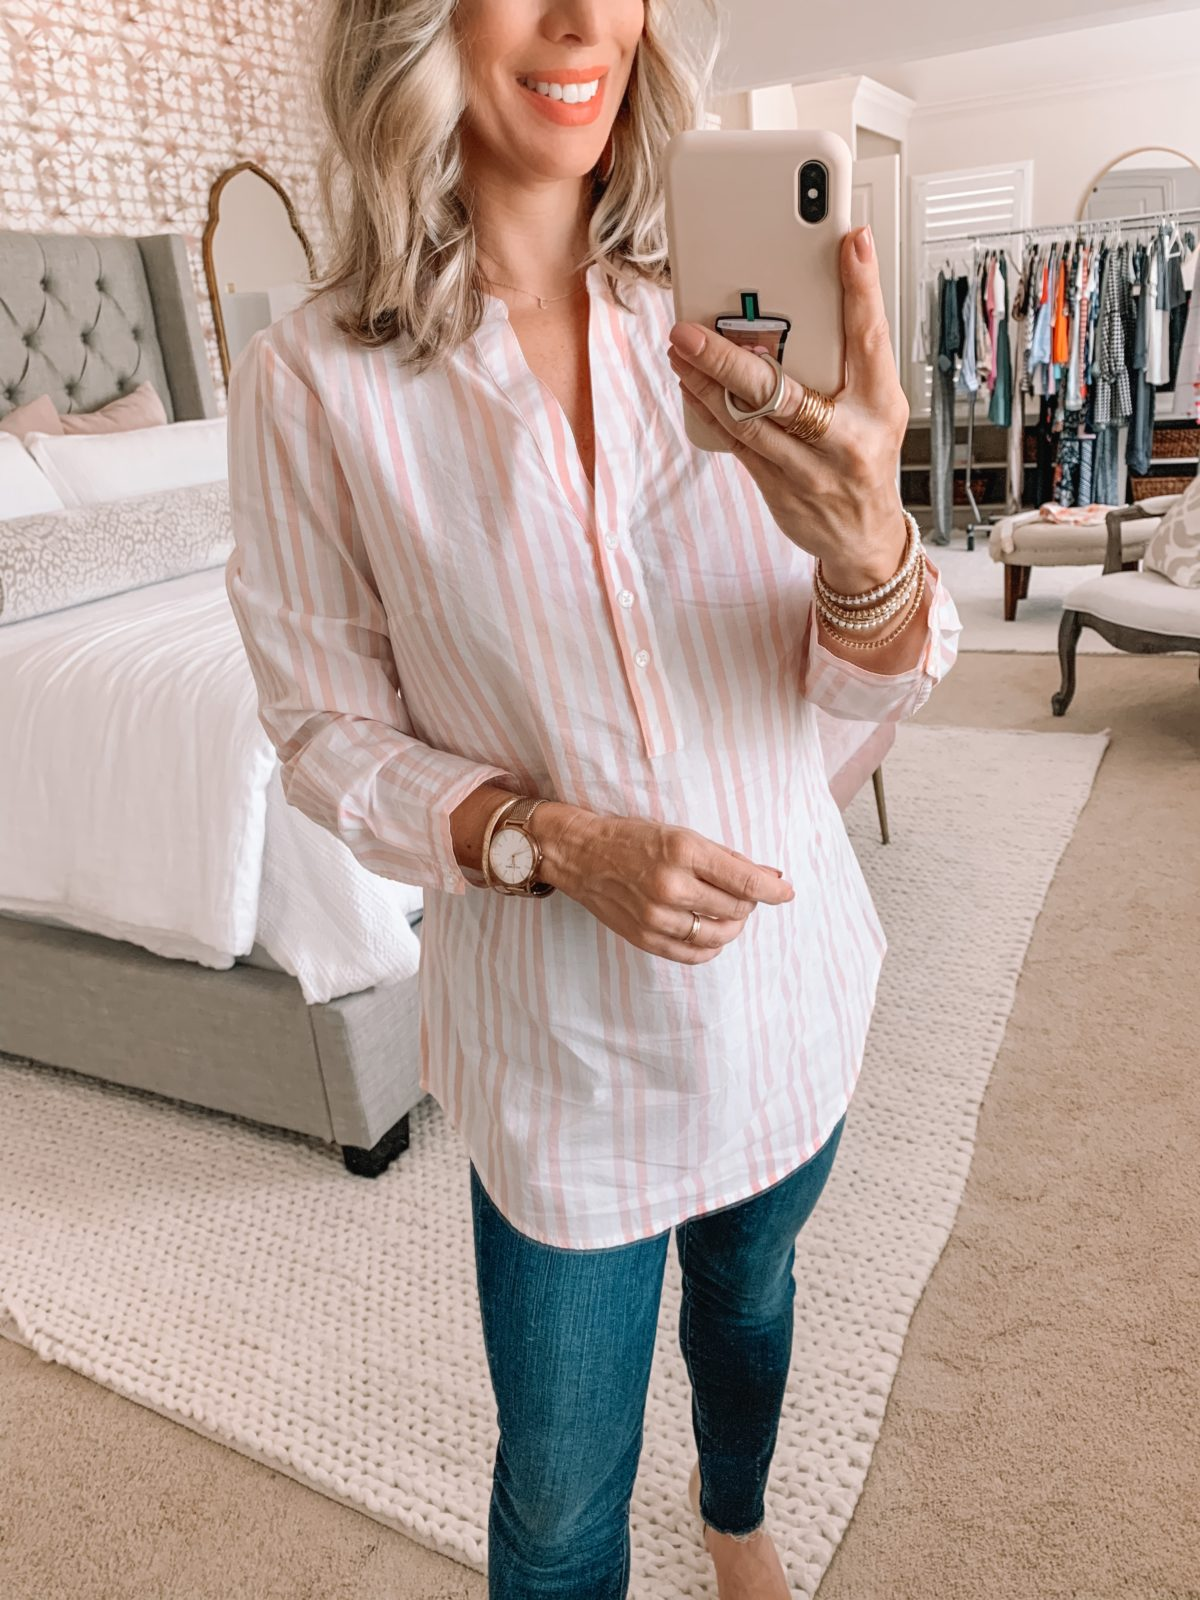 Amazon Fashion Finds, Striped Tunic Top, Skinny Jeans, Heels